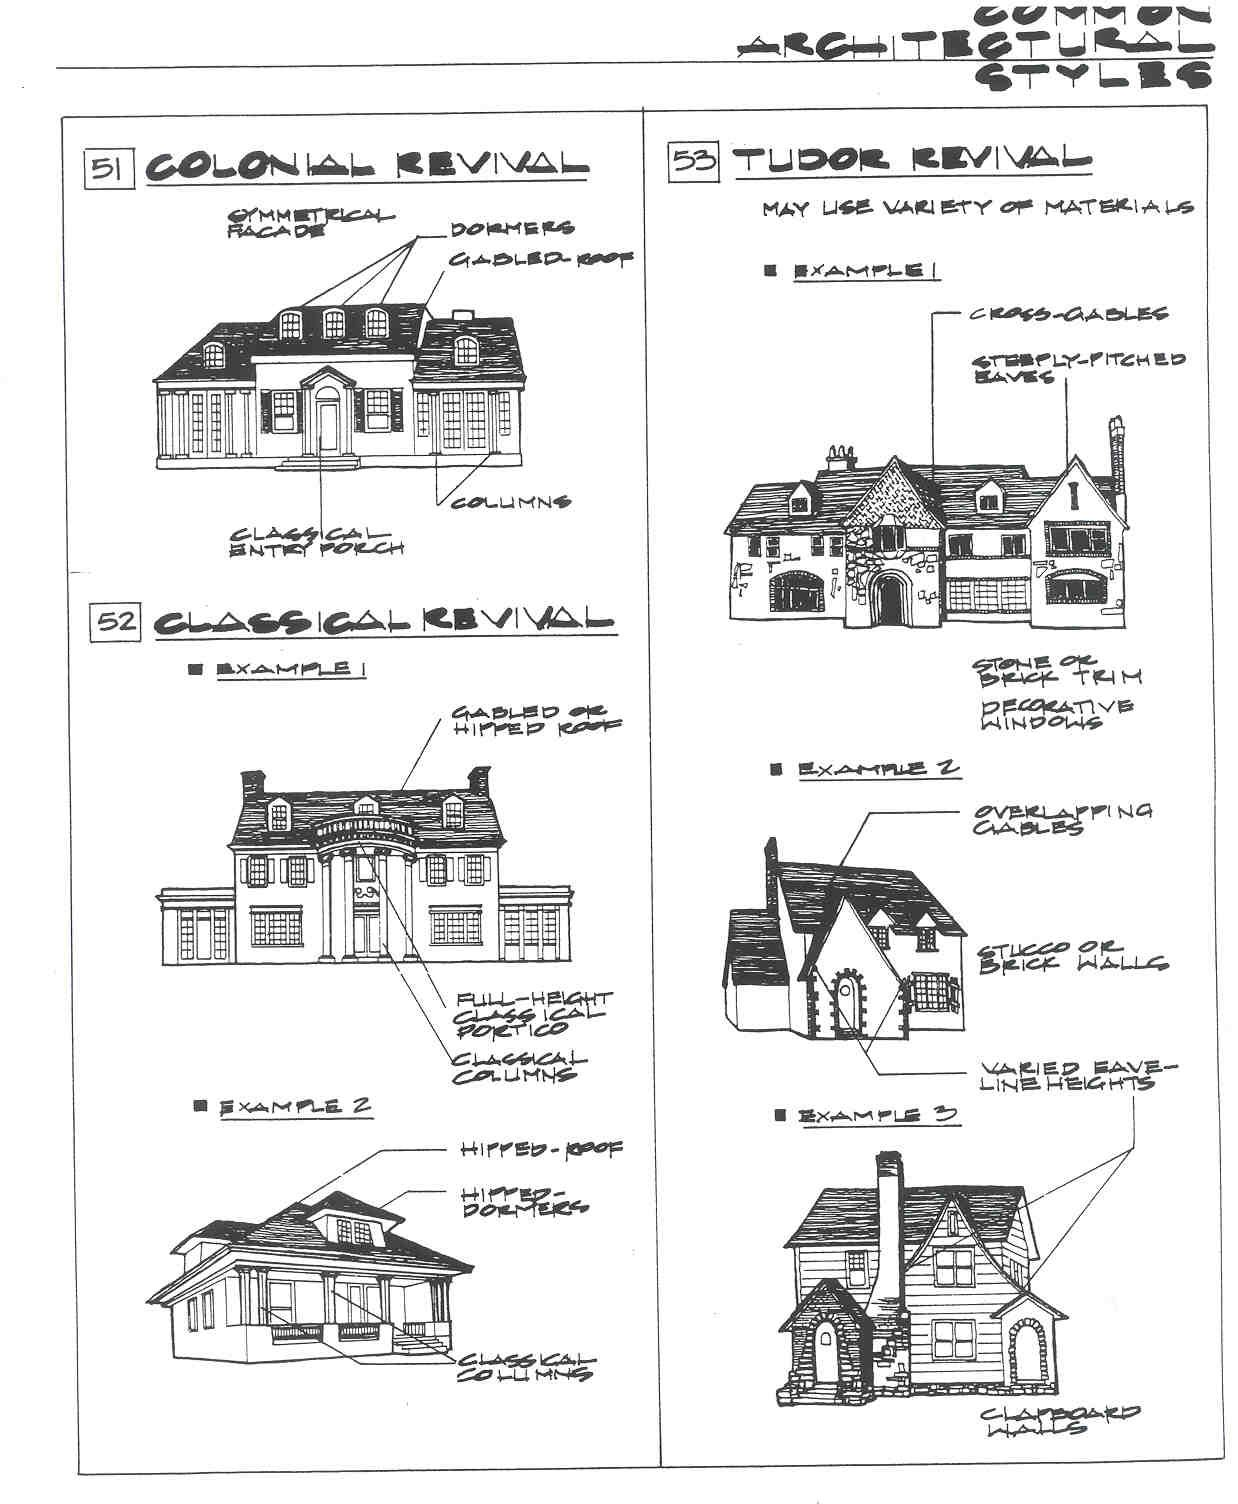 Architectural styles guide for Architectural home styles guide